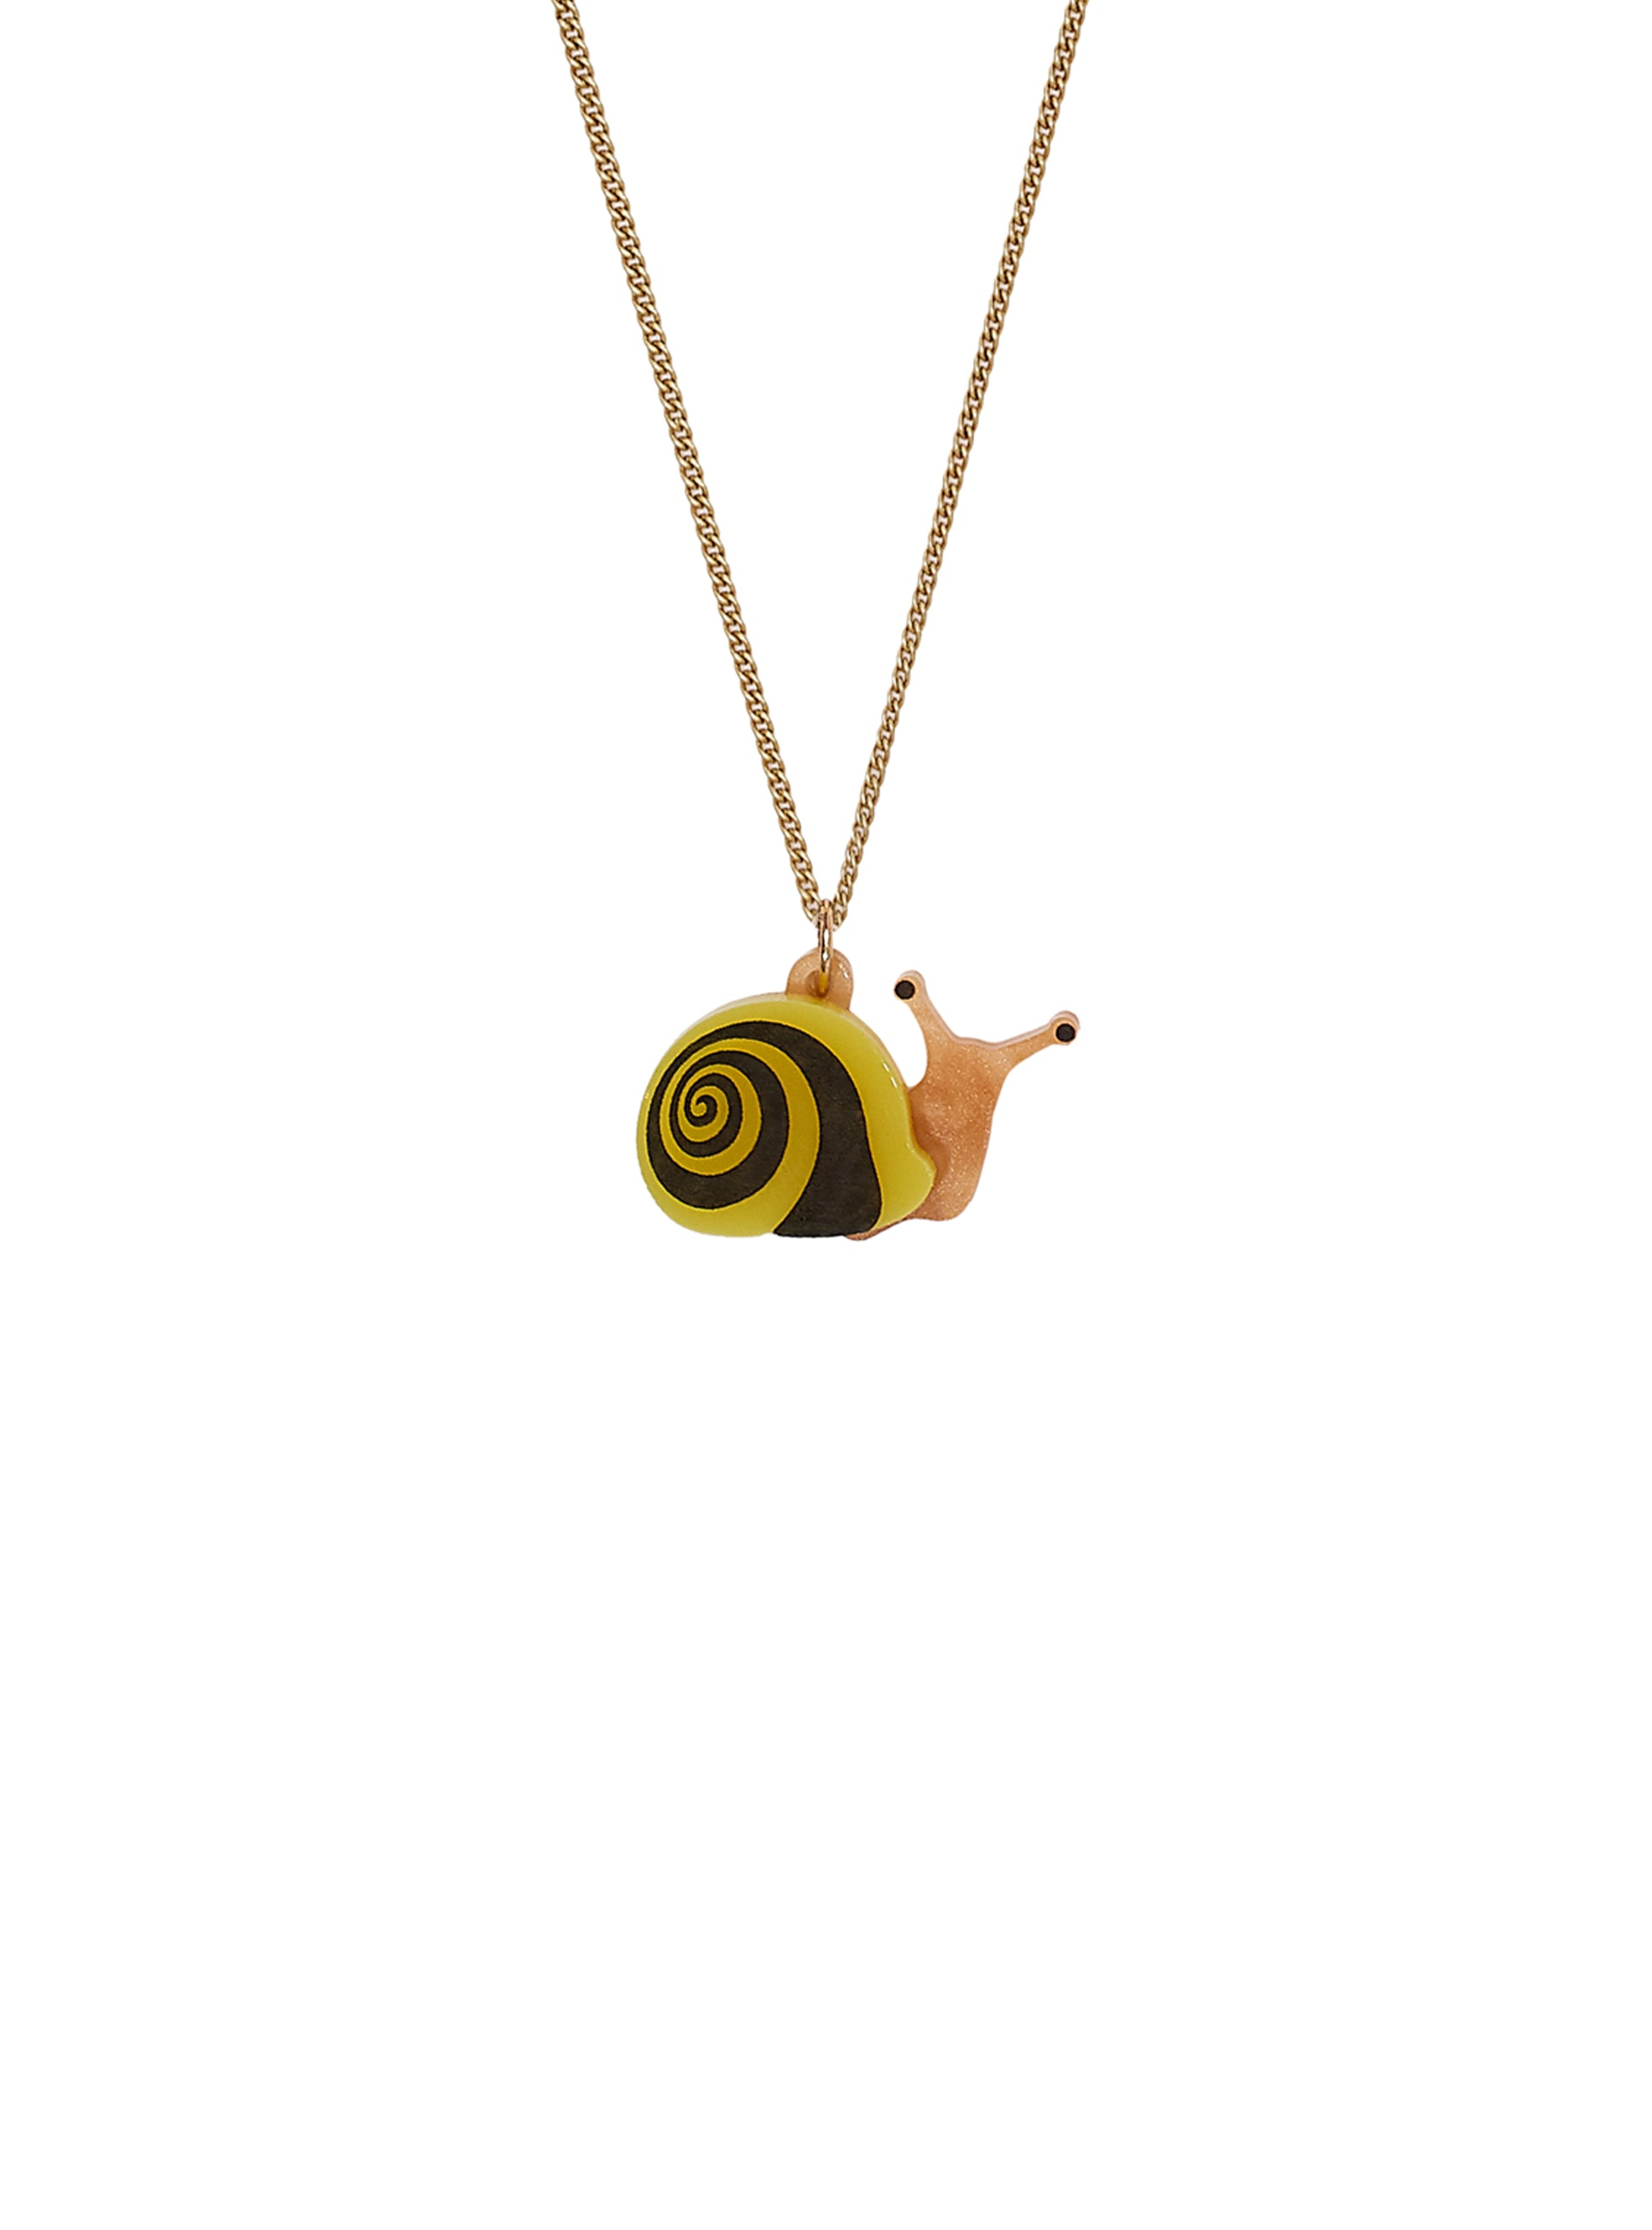 Swirly-Snail-Necklace